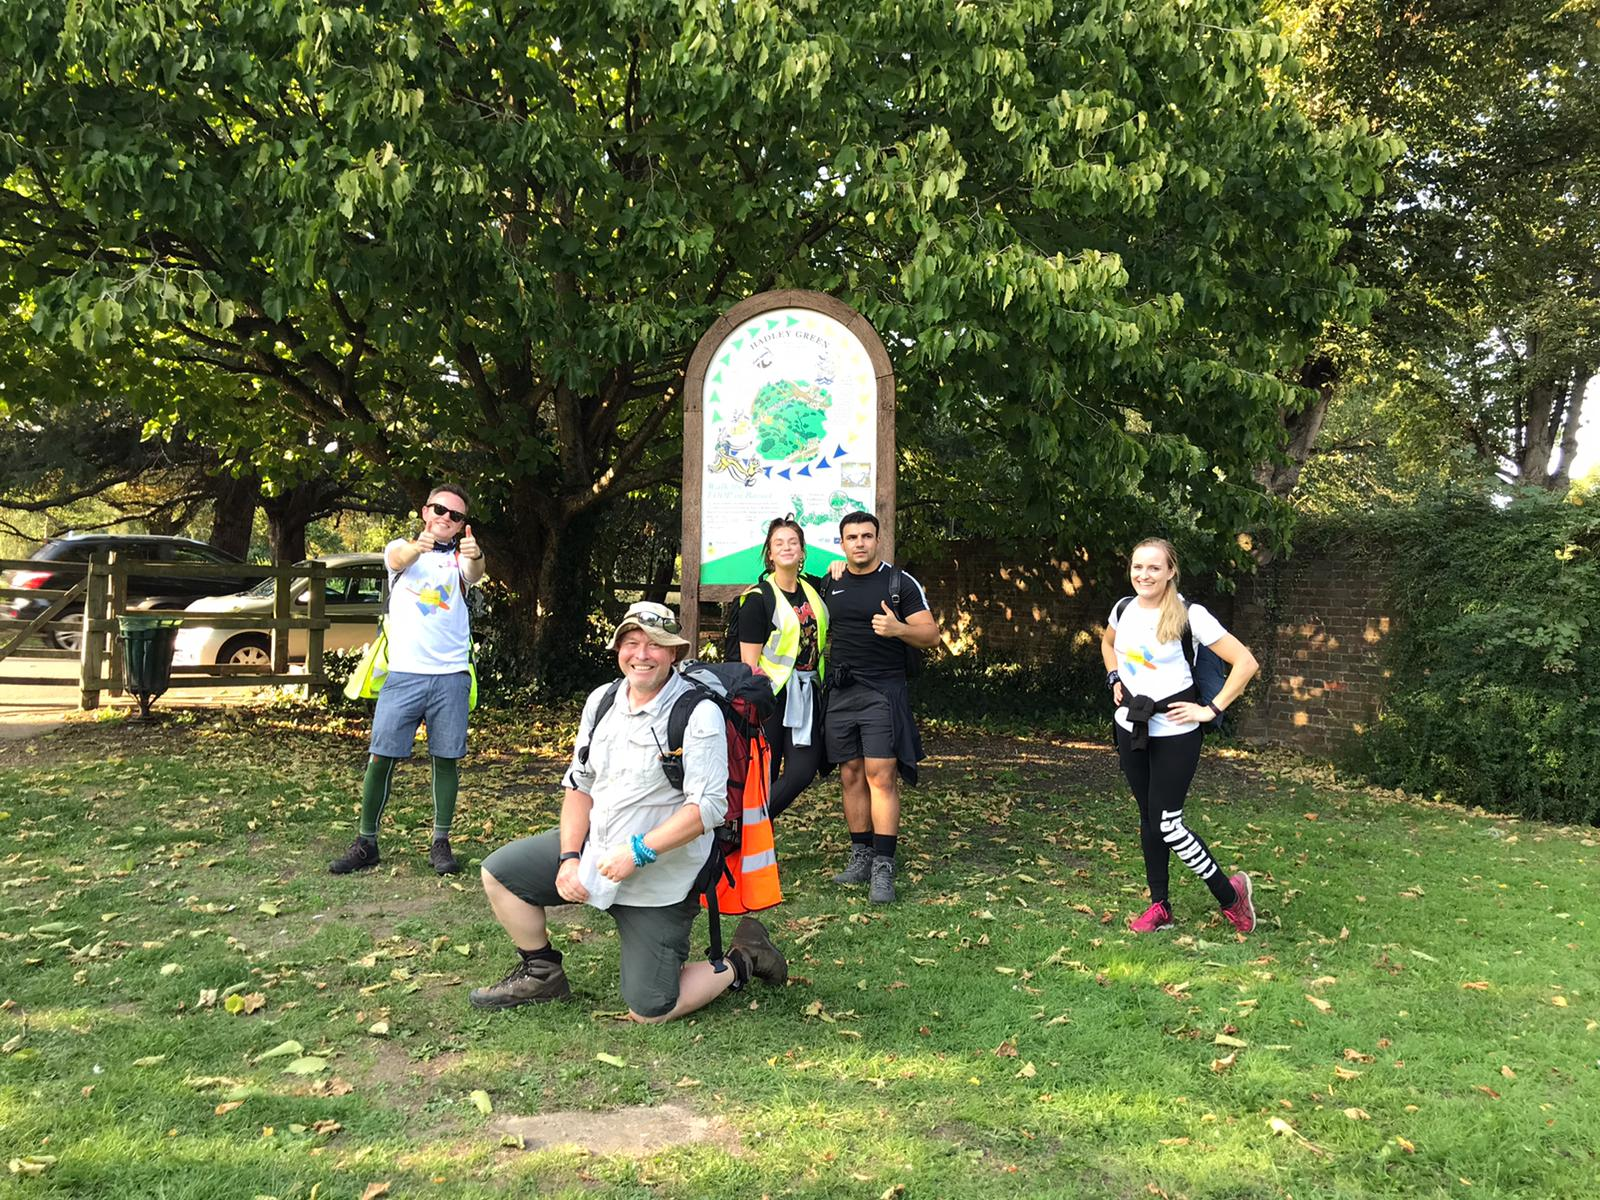 The Metro.co.uk London 10 Peaks Challenge team, with Vicky Pattison